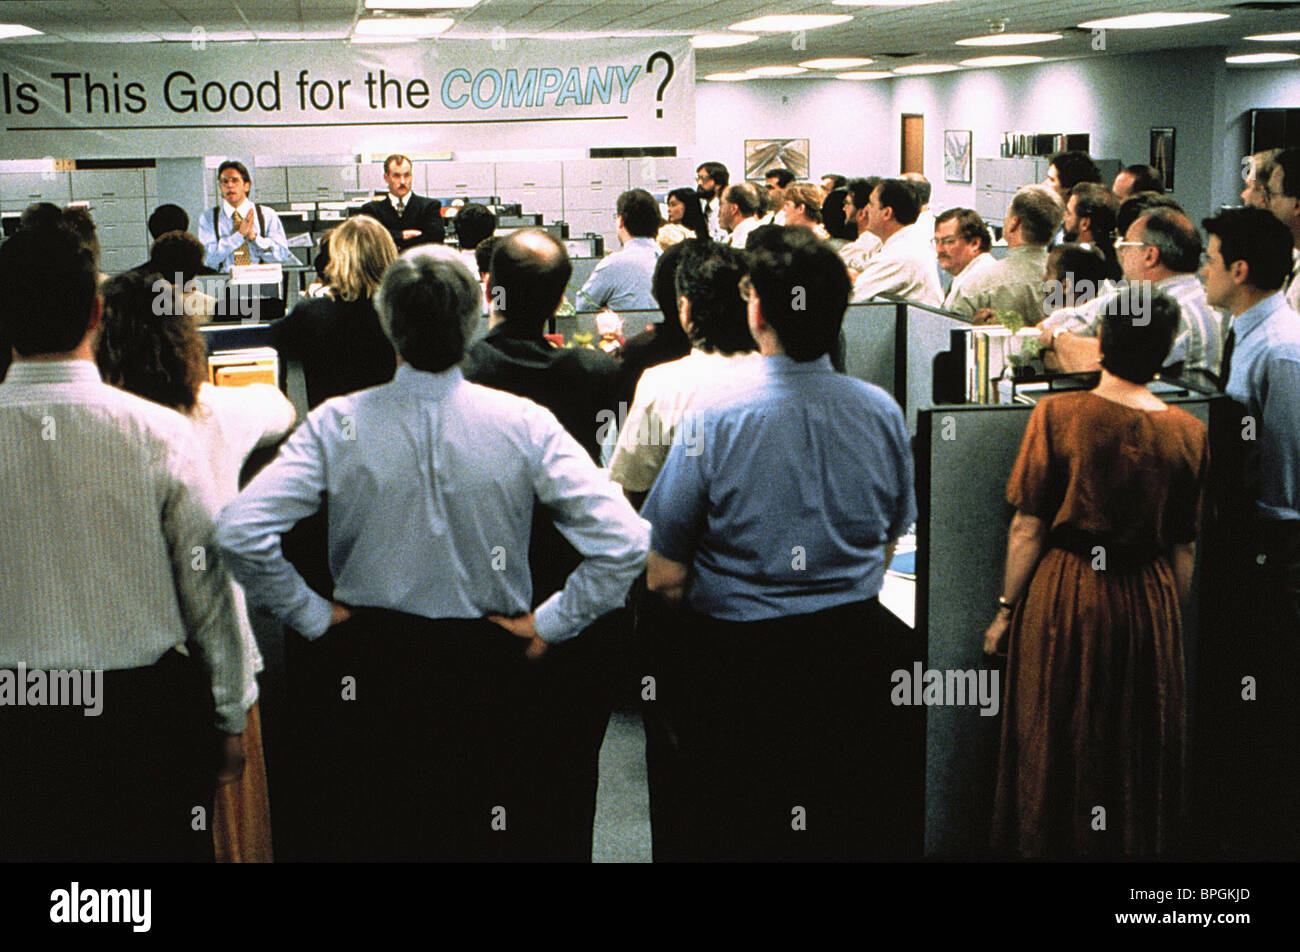 OFFICE MEETING SCENE OFFICE SPACE (1999) Stock Photo